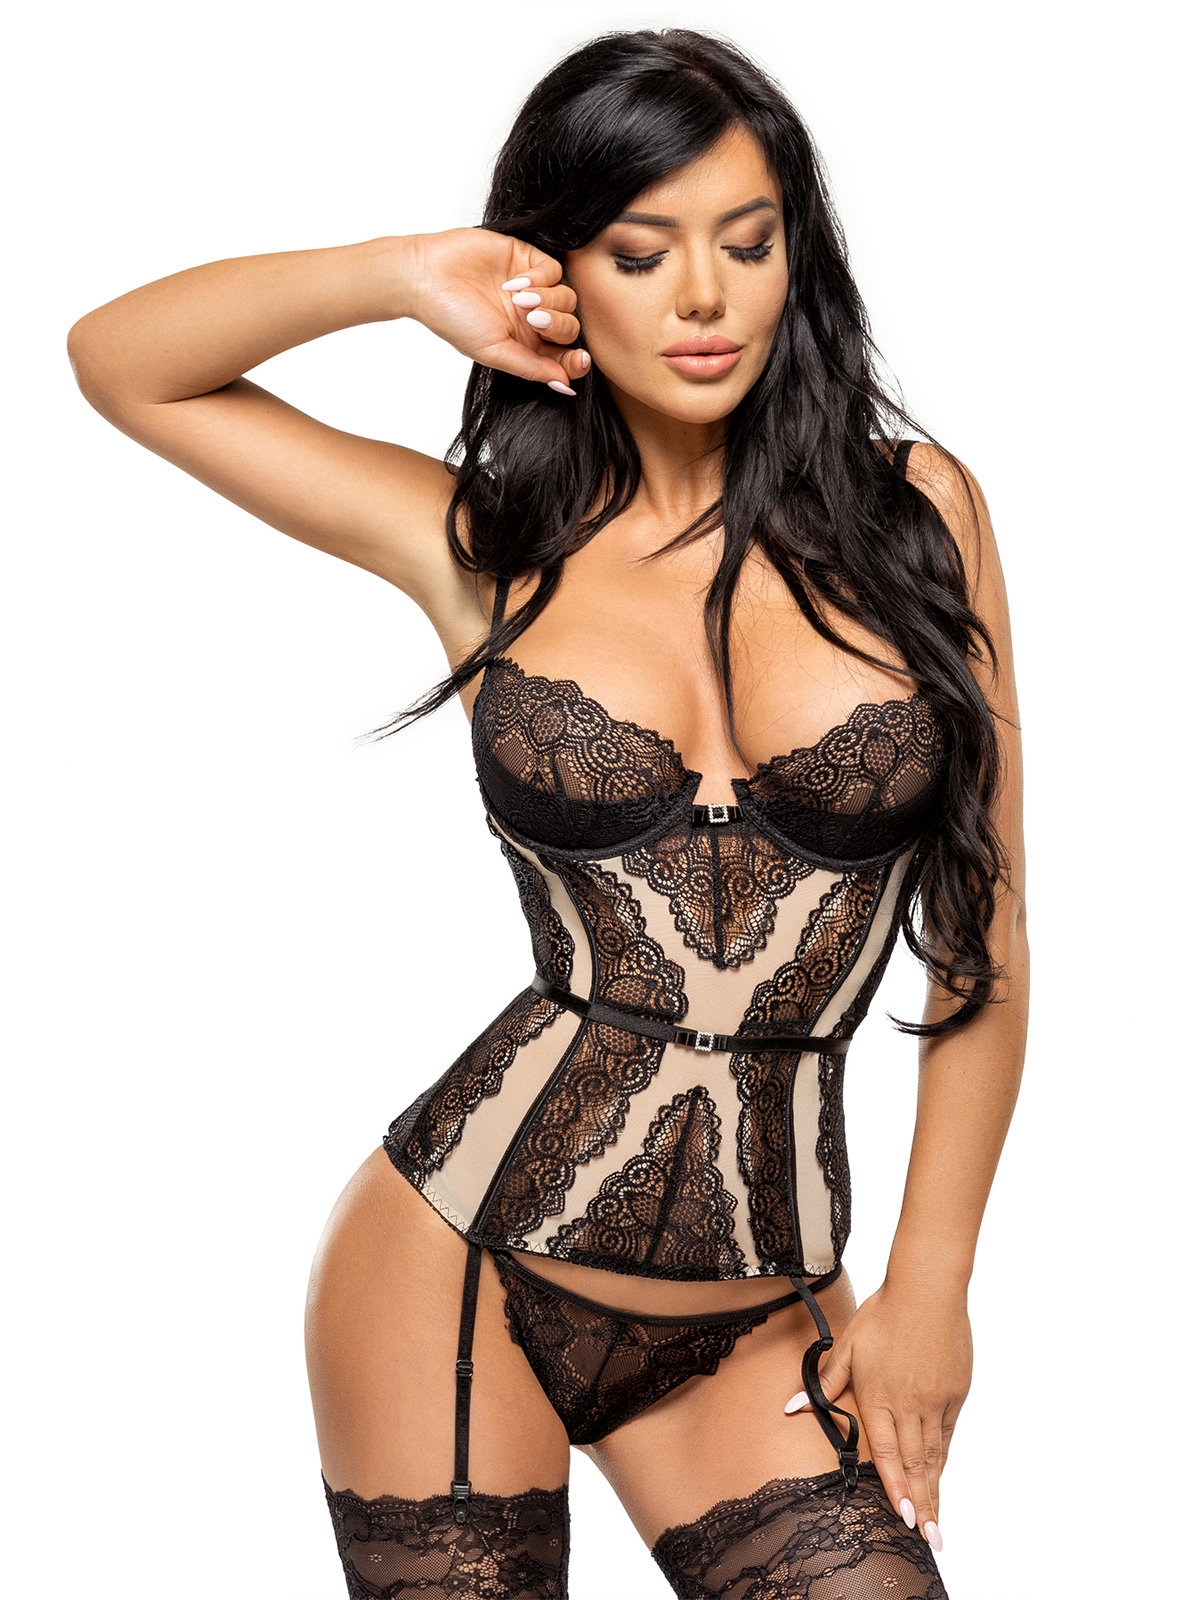 Beauty Night Corset Ravenna corset Bej